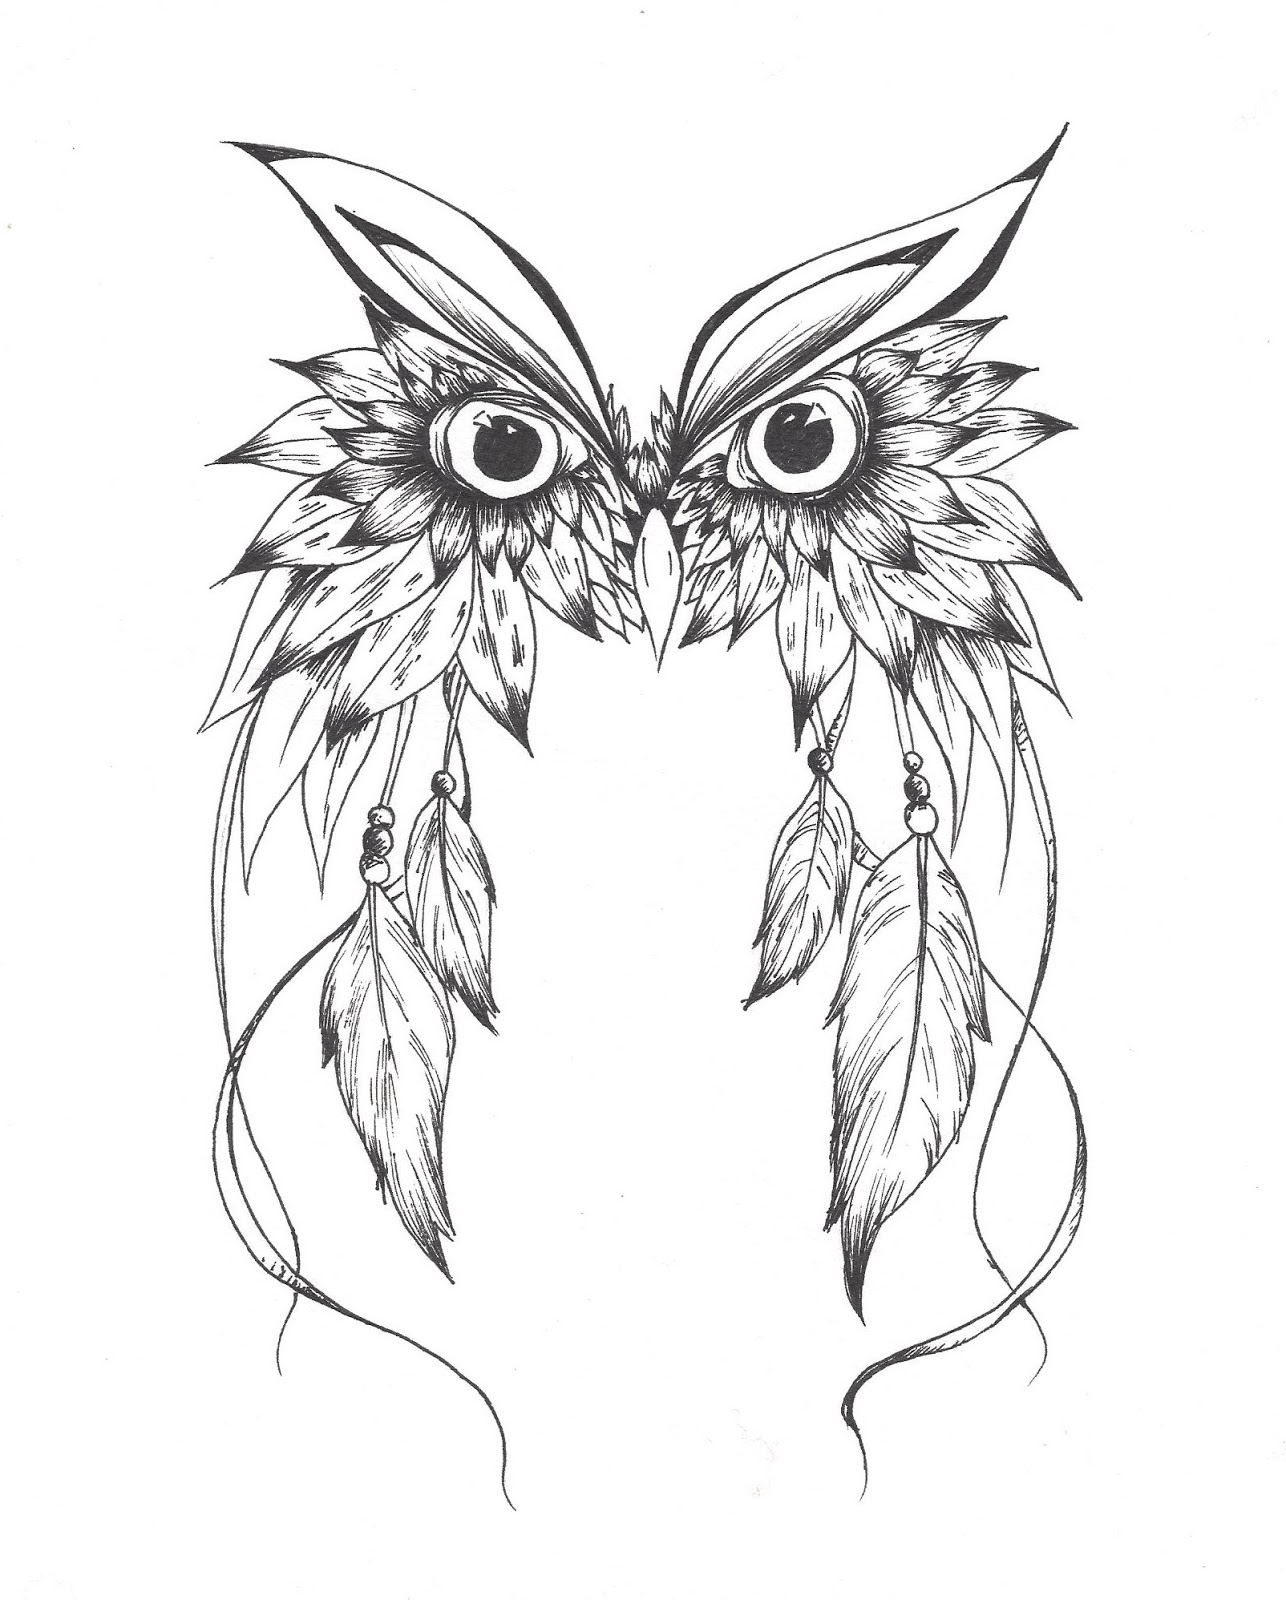 Owl dreamcatcher drawing - photo#14